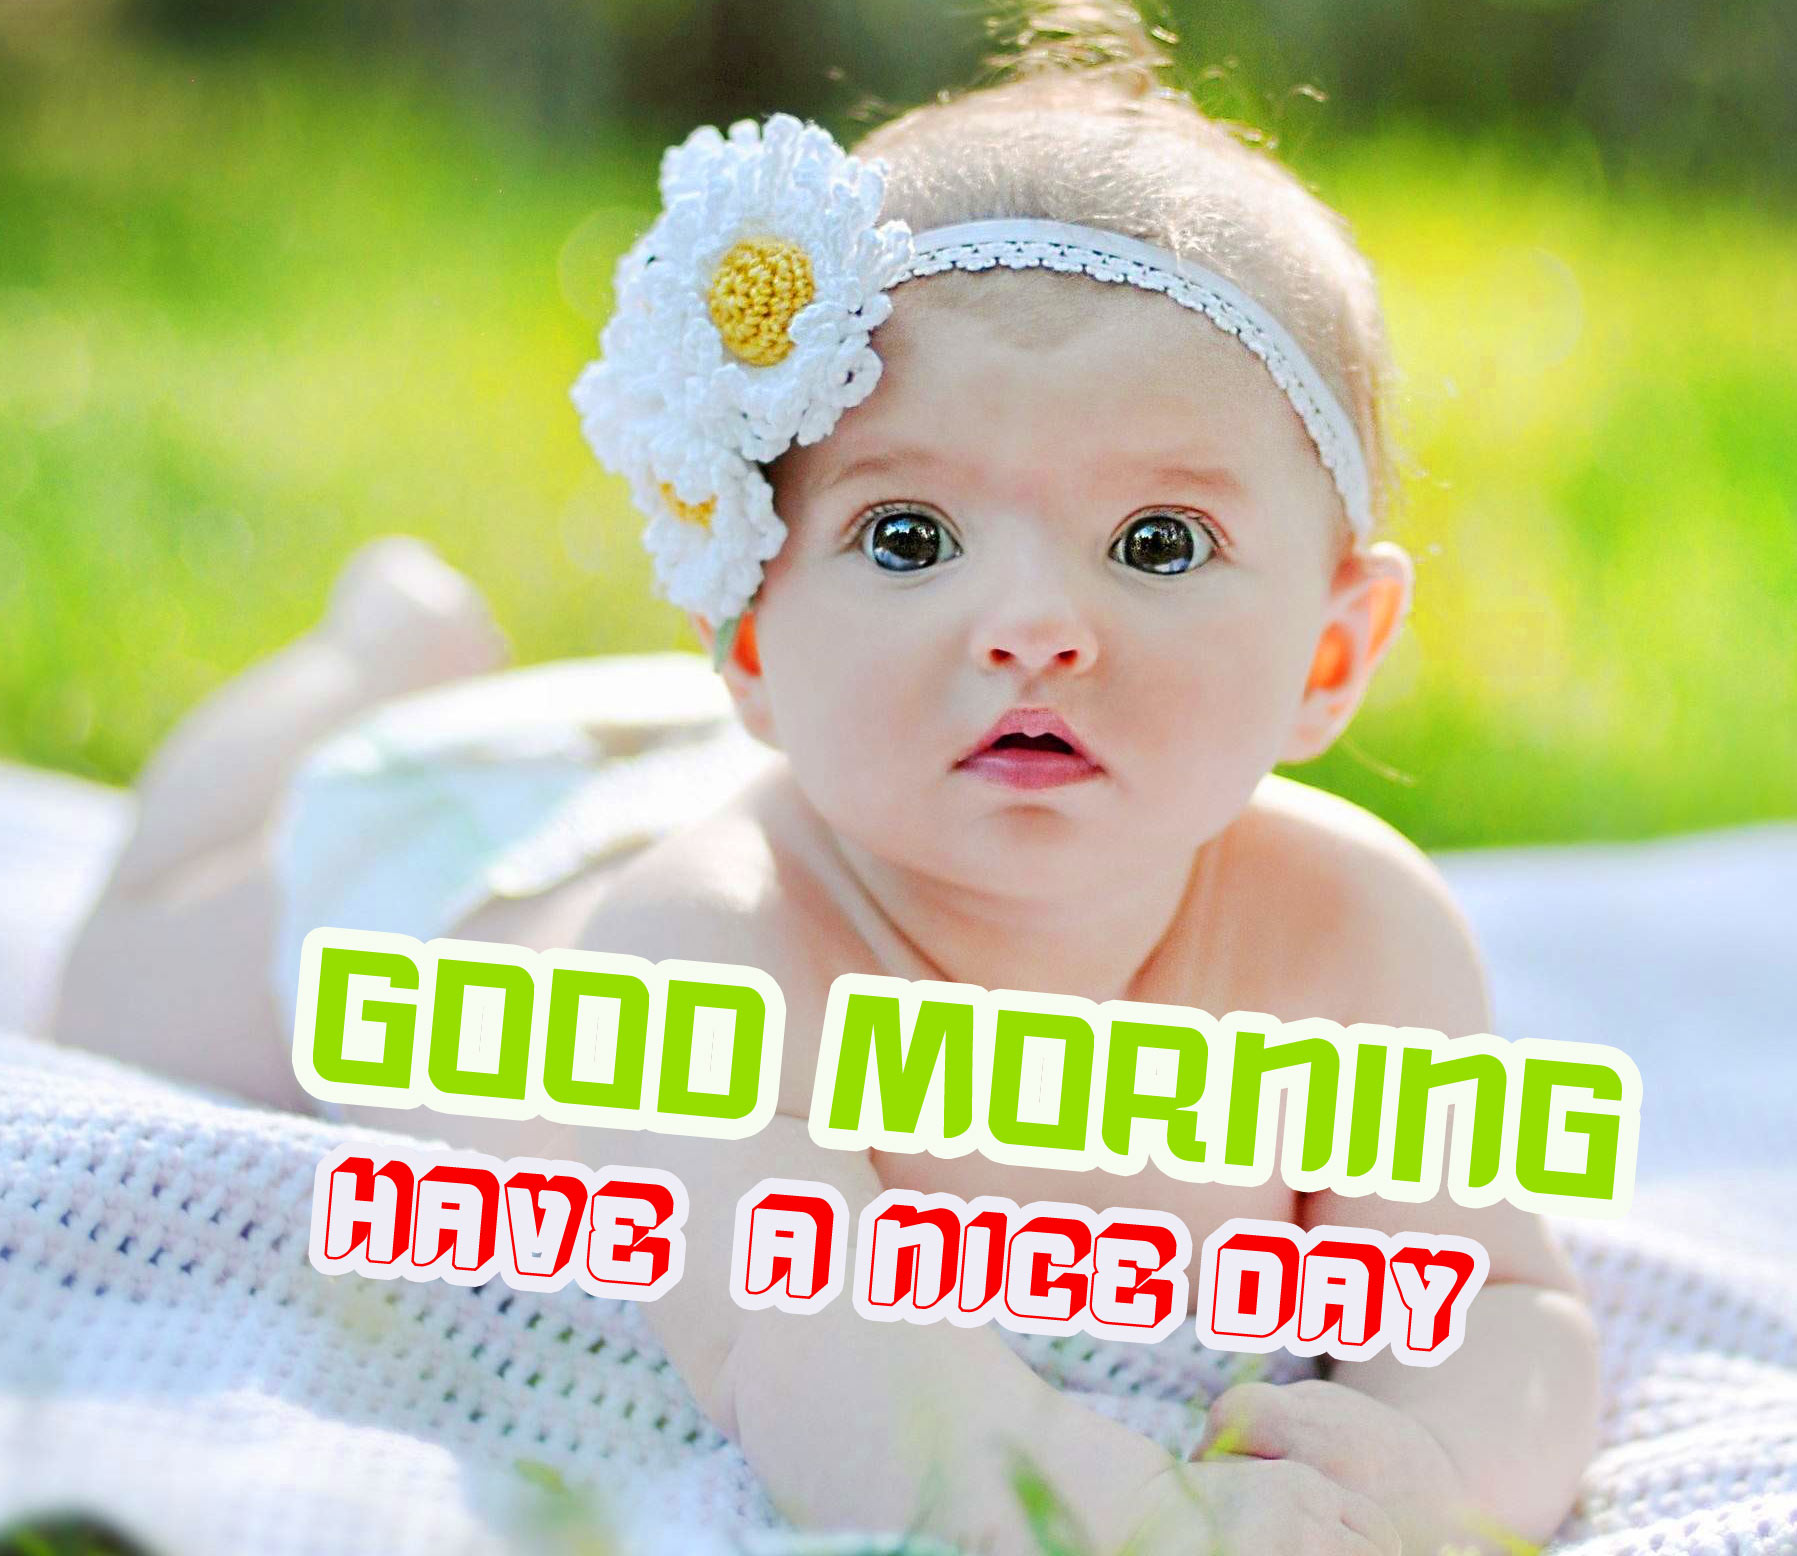 126 Good Morning Baby Images Wallpaper Photo Pics Download Good Morning Images Good Morning Photo Hd Downlaod Good Morning Pics Wallpaper Hd